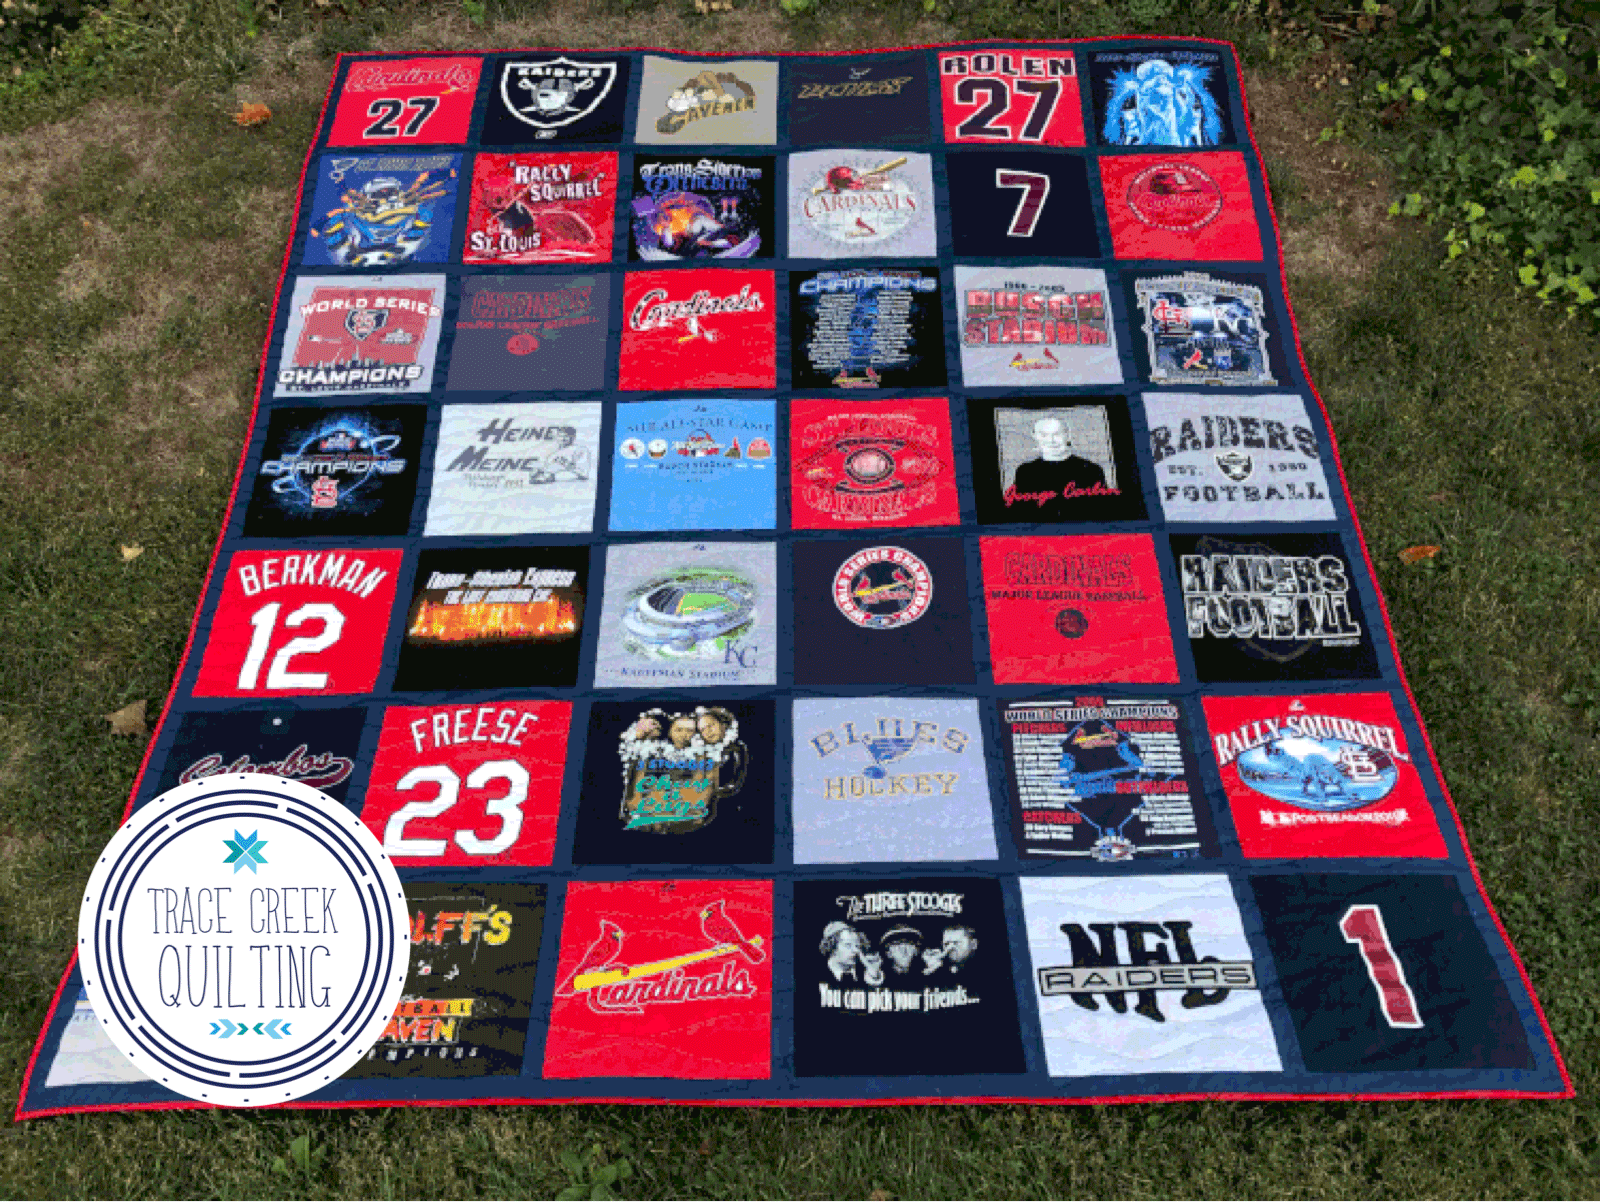 TShirt-Quilt-Trace-Creek-Quilting-029.png